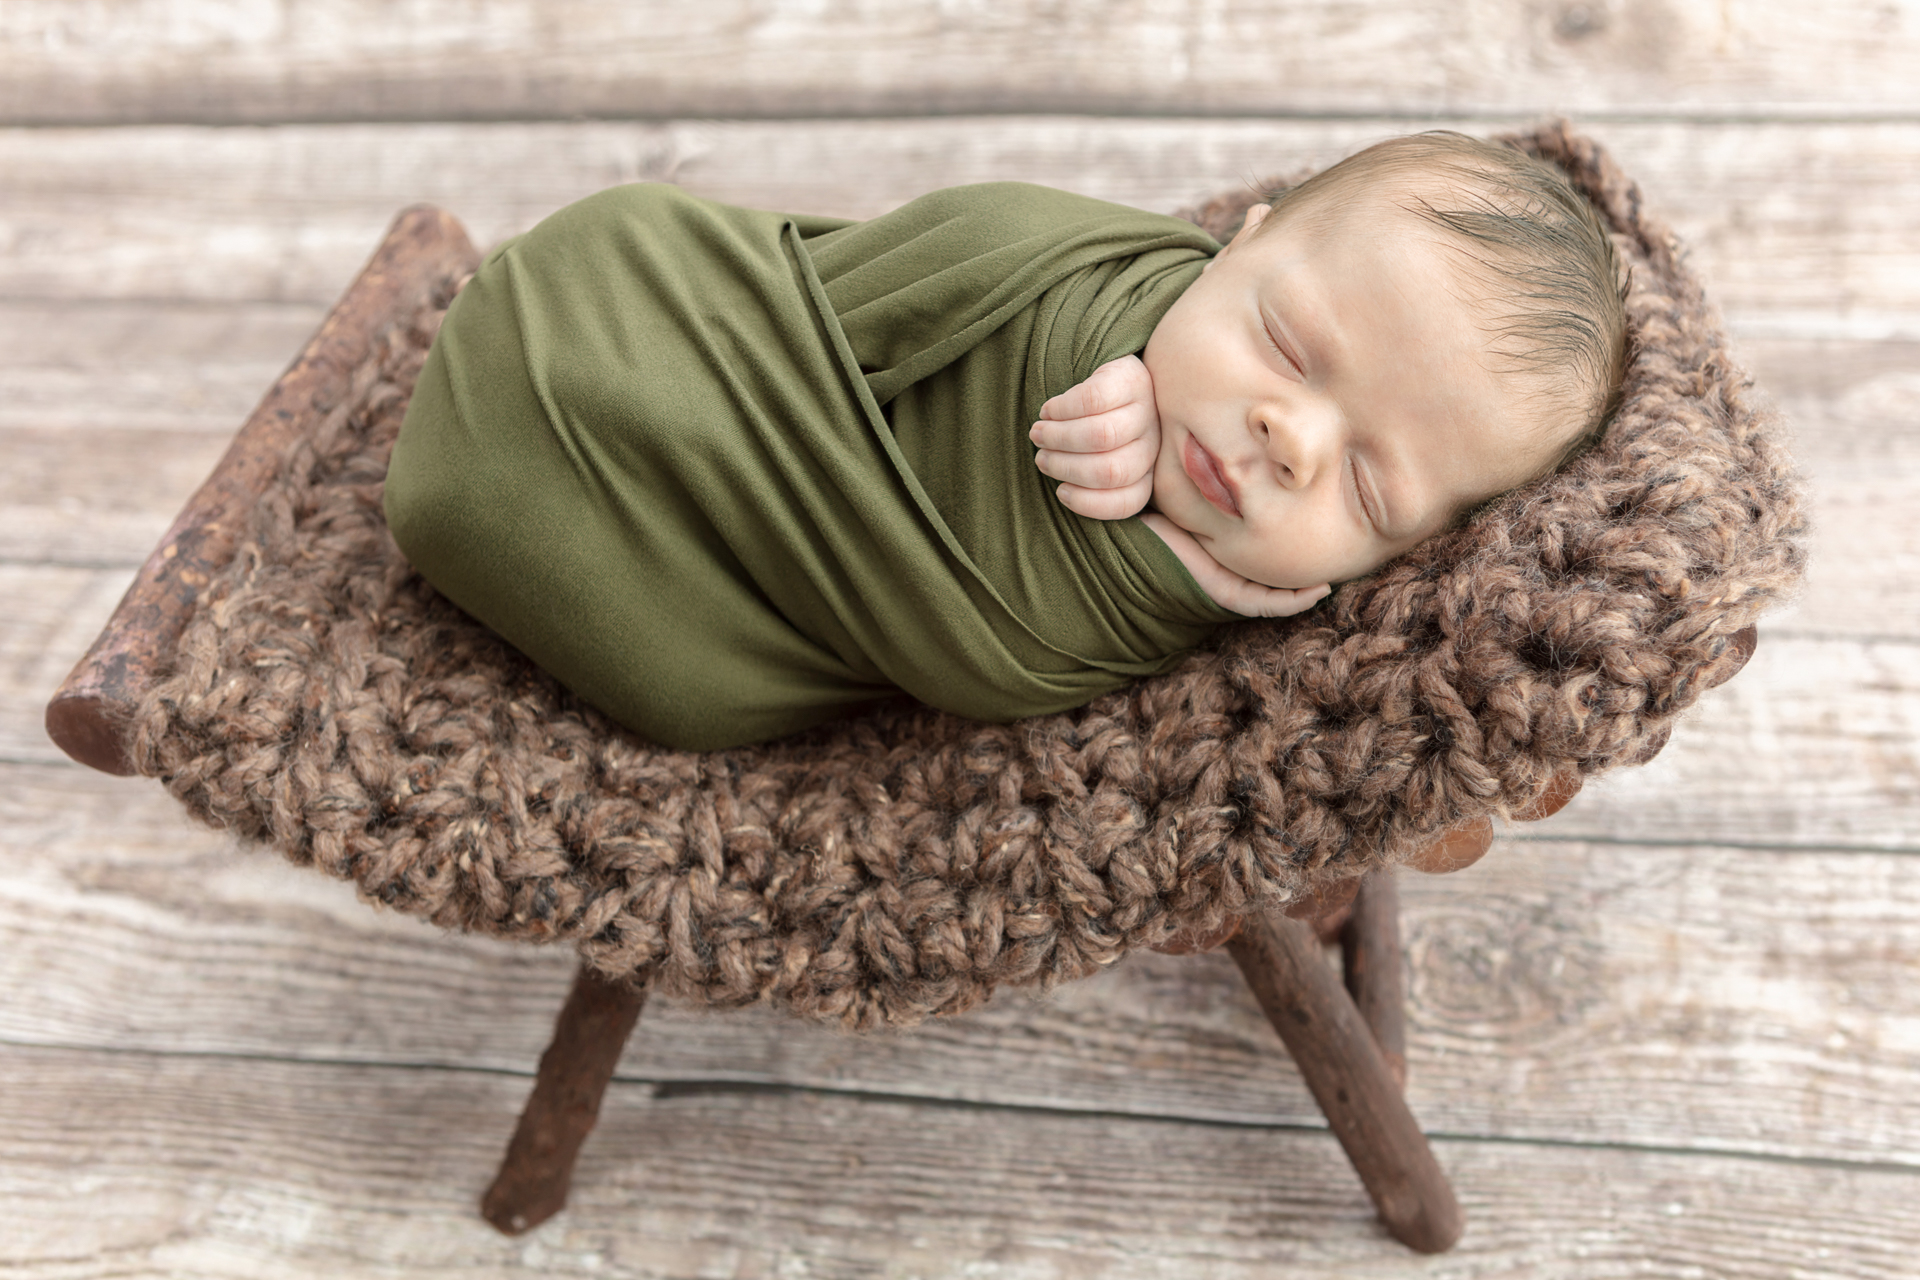 newborn baby boy wrapped in a moss green swaddle with one hand holding onto the front of the swaddle